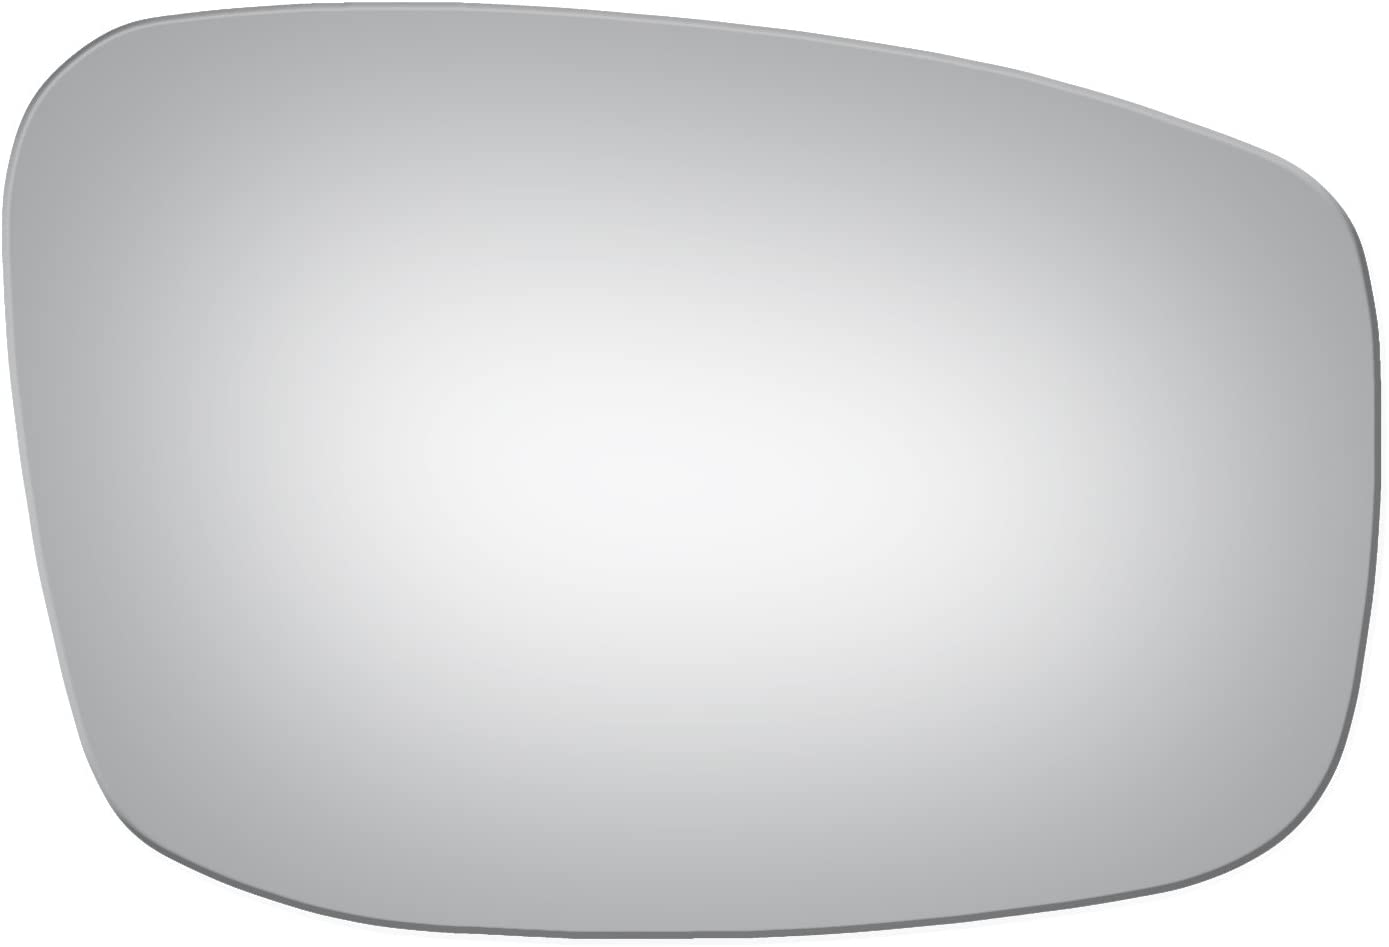 Burco 5323 Convex Passenger Side Replacement Mirror Glass for Infiniti G37 Q40 2008, 2009, 2010, 2011, 2012, 2013, 2014, 2015